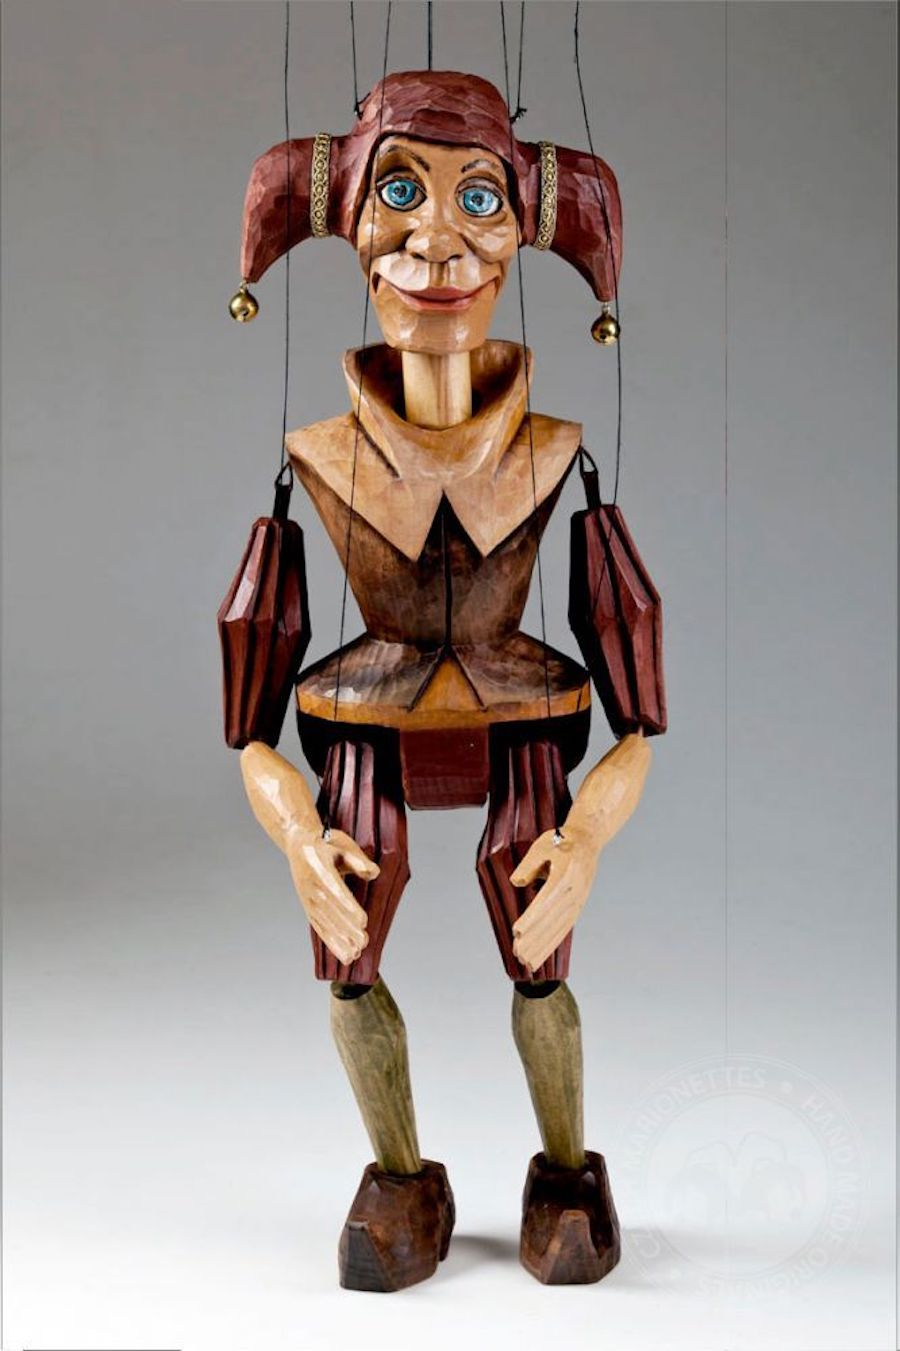 Czech-Marionettes-5-jester_hand-carved-marionette-puppet.6a89